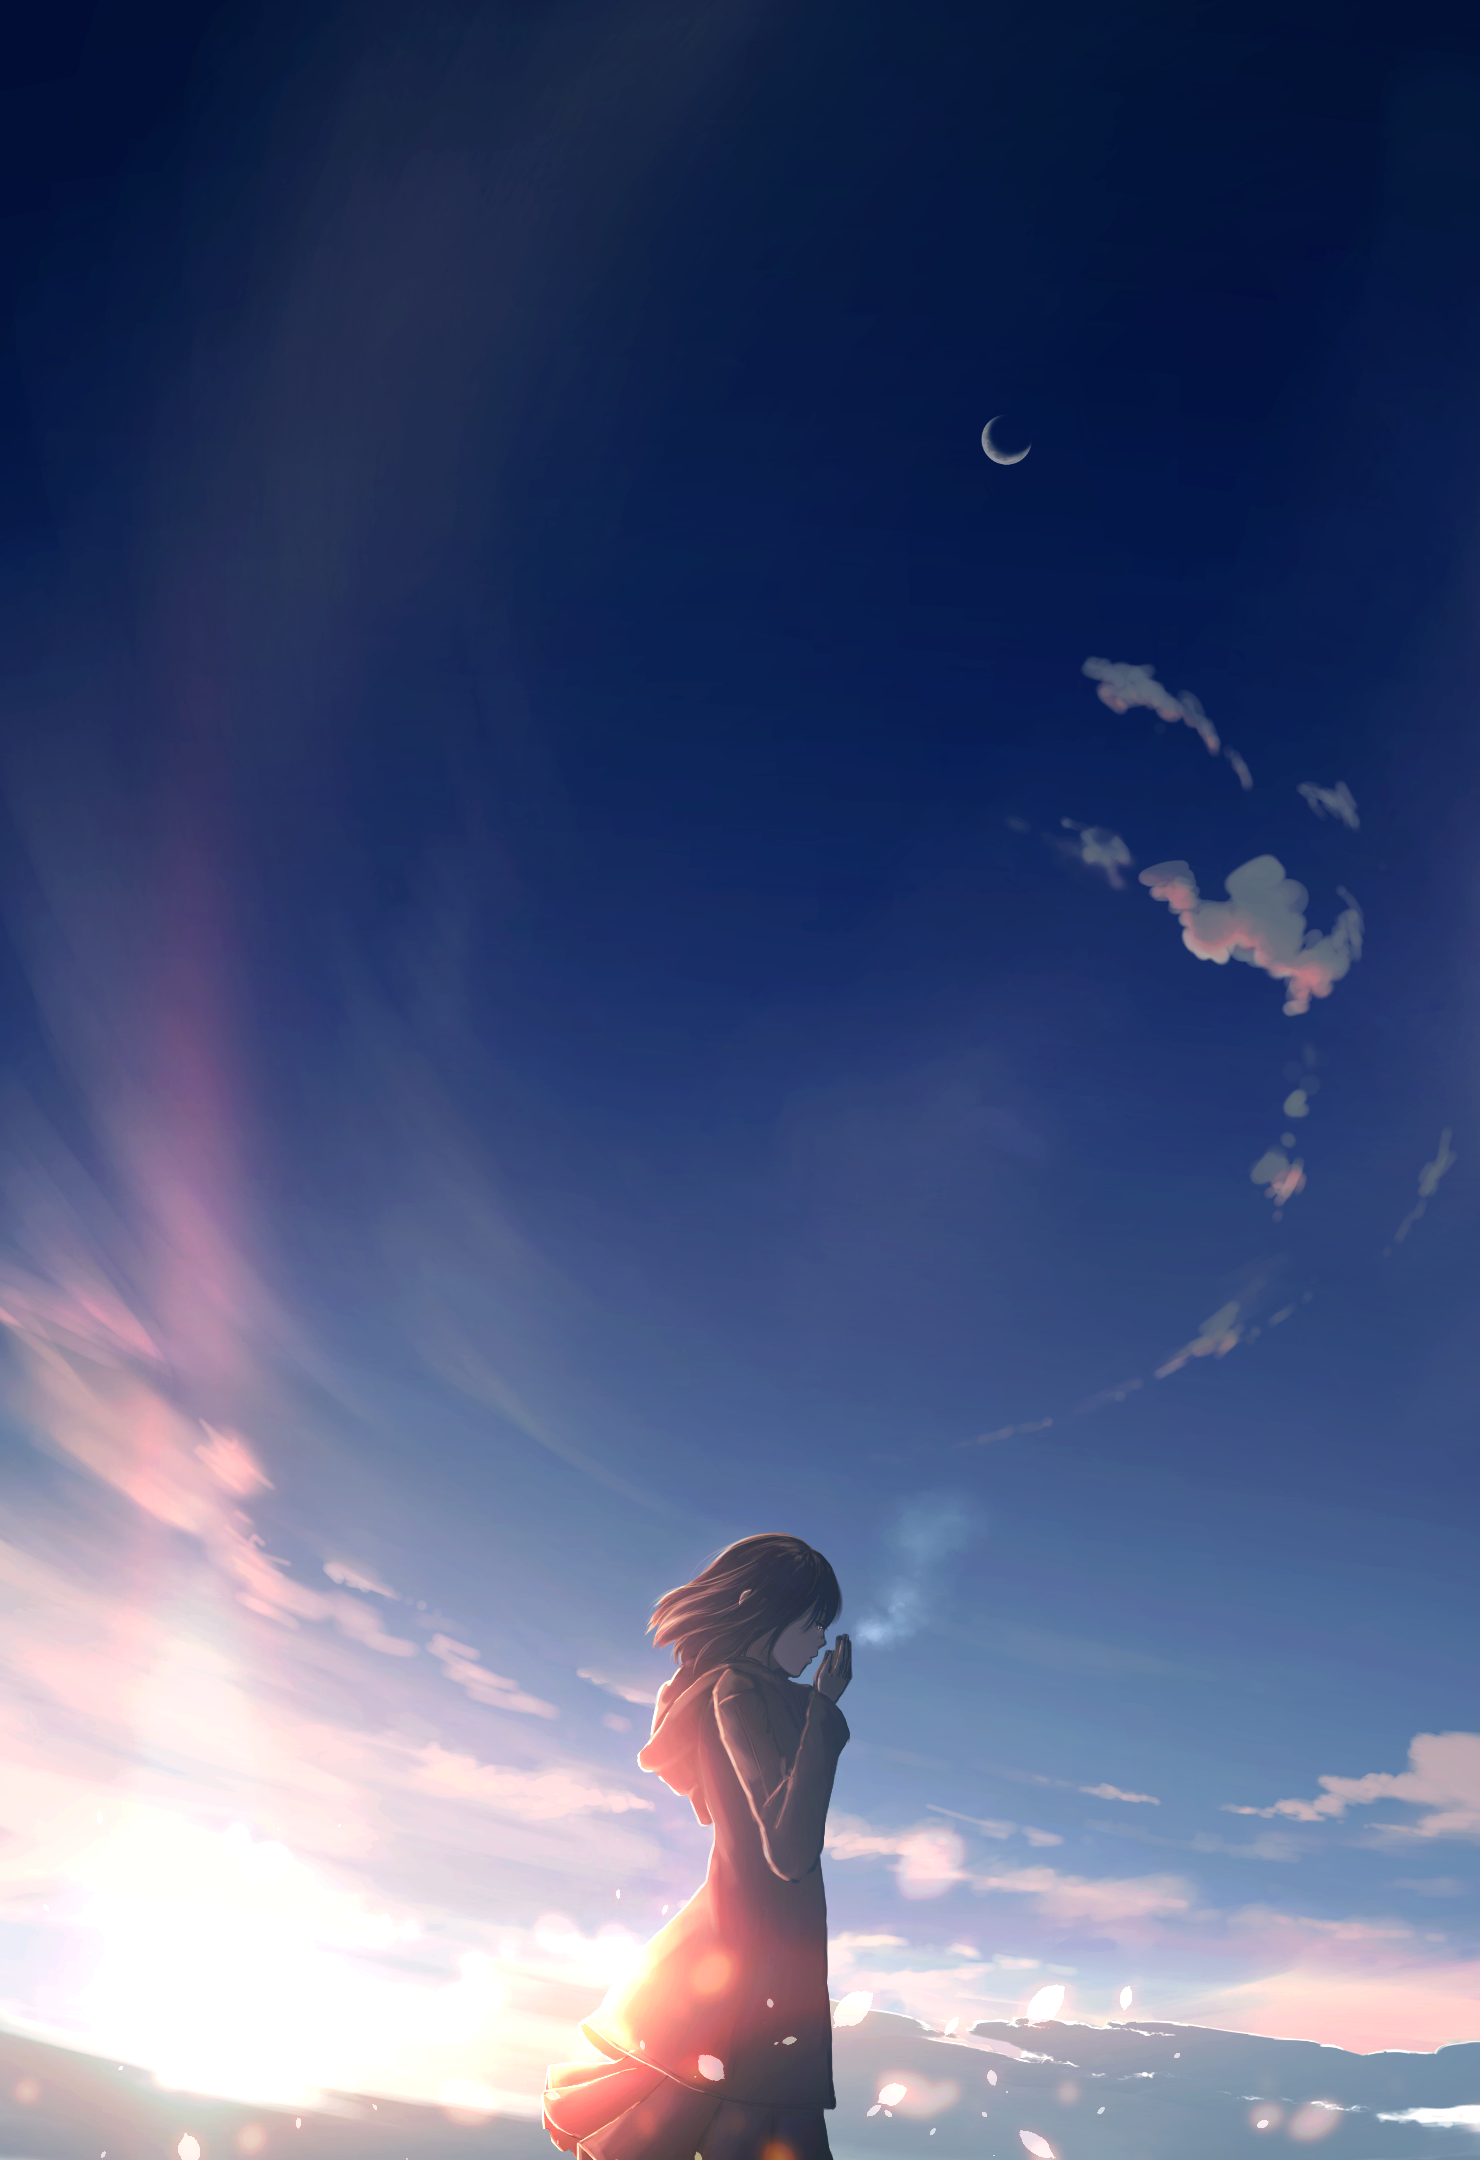 Browse the New of Black Wallpaper Anime for Xiaomi 2020 from Uploaded by user